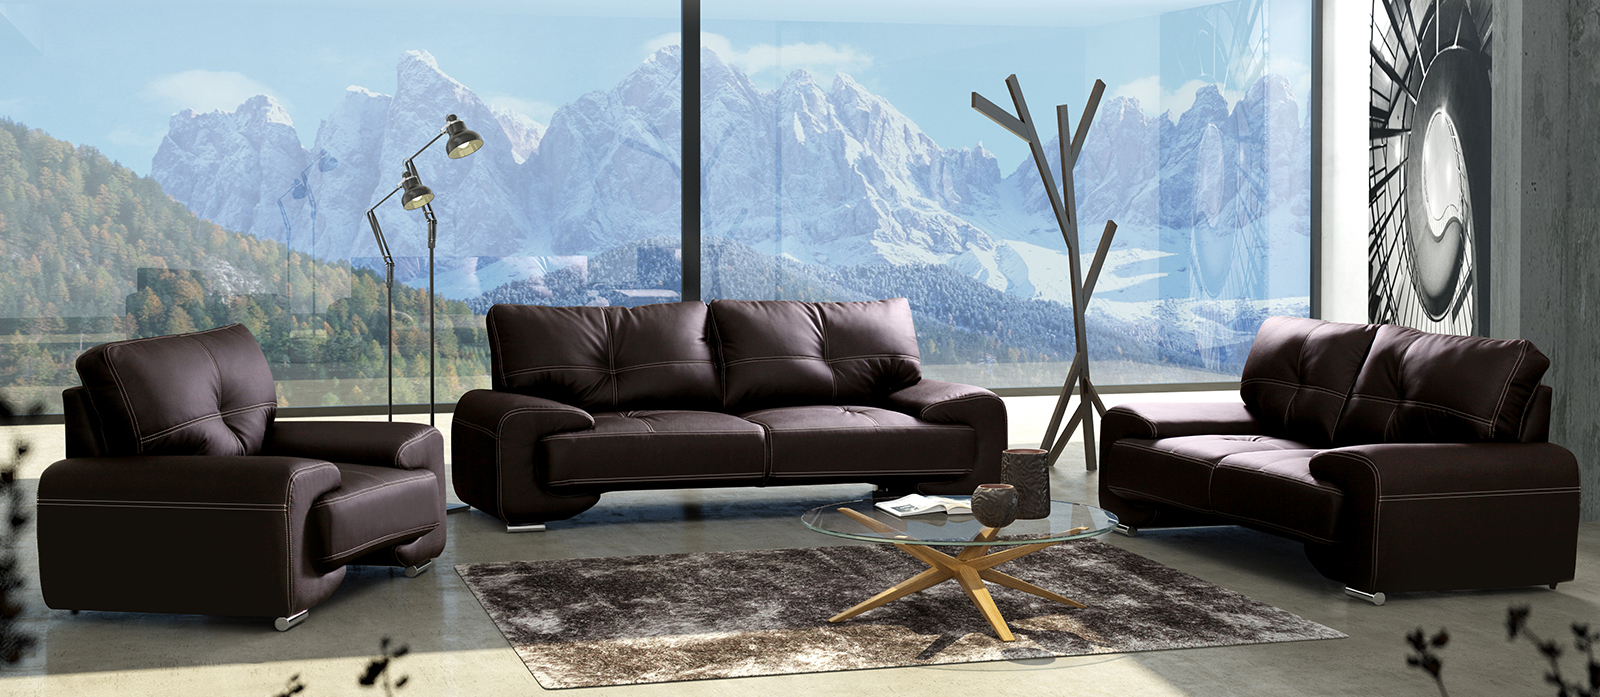 m bel m ller braun shop couchtische sofas kleiderschr nke mit grafiken tische und st hle. Black Bedroom Furniture Sets. Home Design Ideas